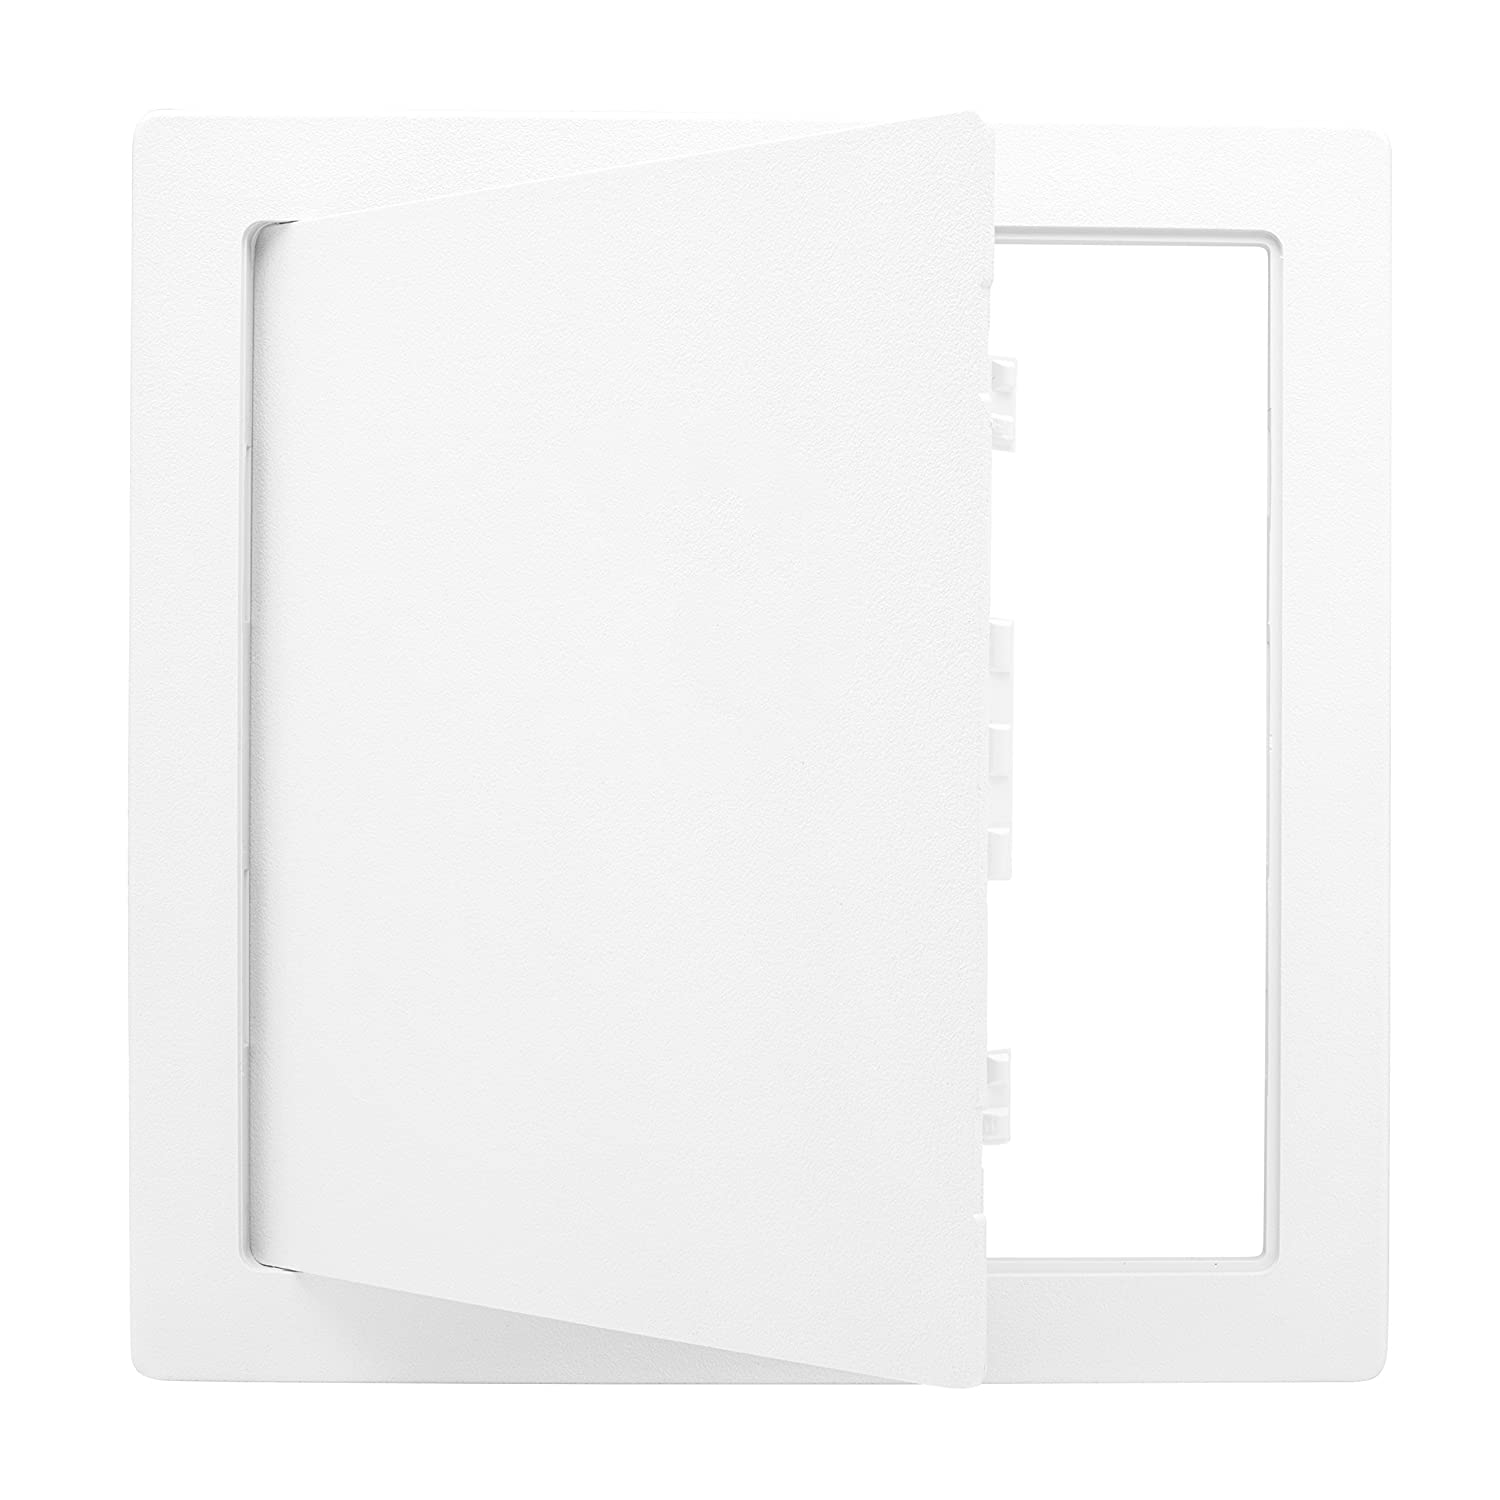 Morvat 12x12 Plastic Access Panel Door White For Drywall Wall RV Electrical Box Laundry Chute and More